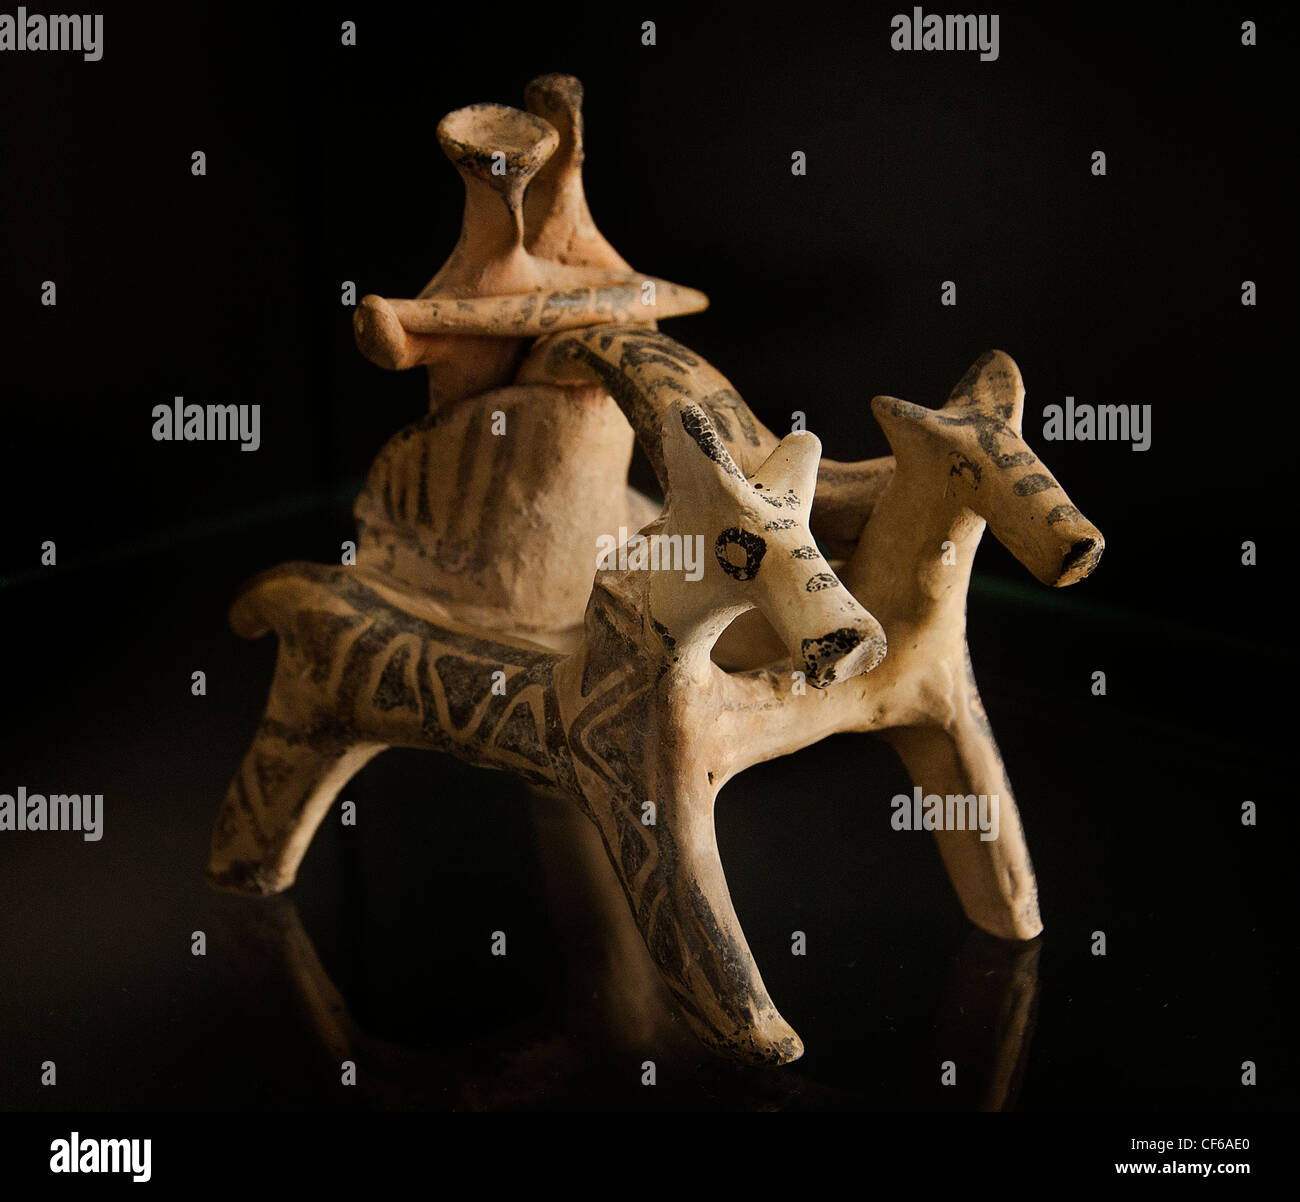 Biga chariot driven by two horses Helladic III A - III B 1400 - 1200 BC Greek Greece obilier burial found in a burial - Stock Image